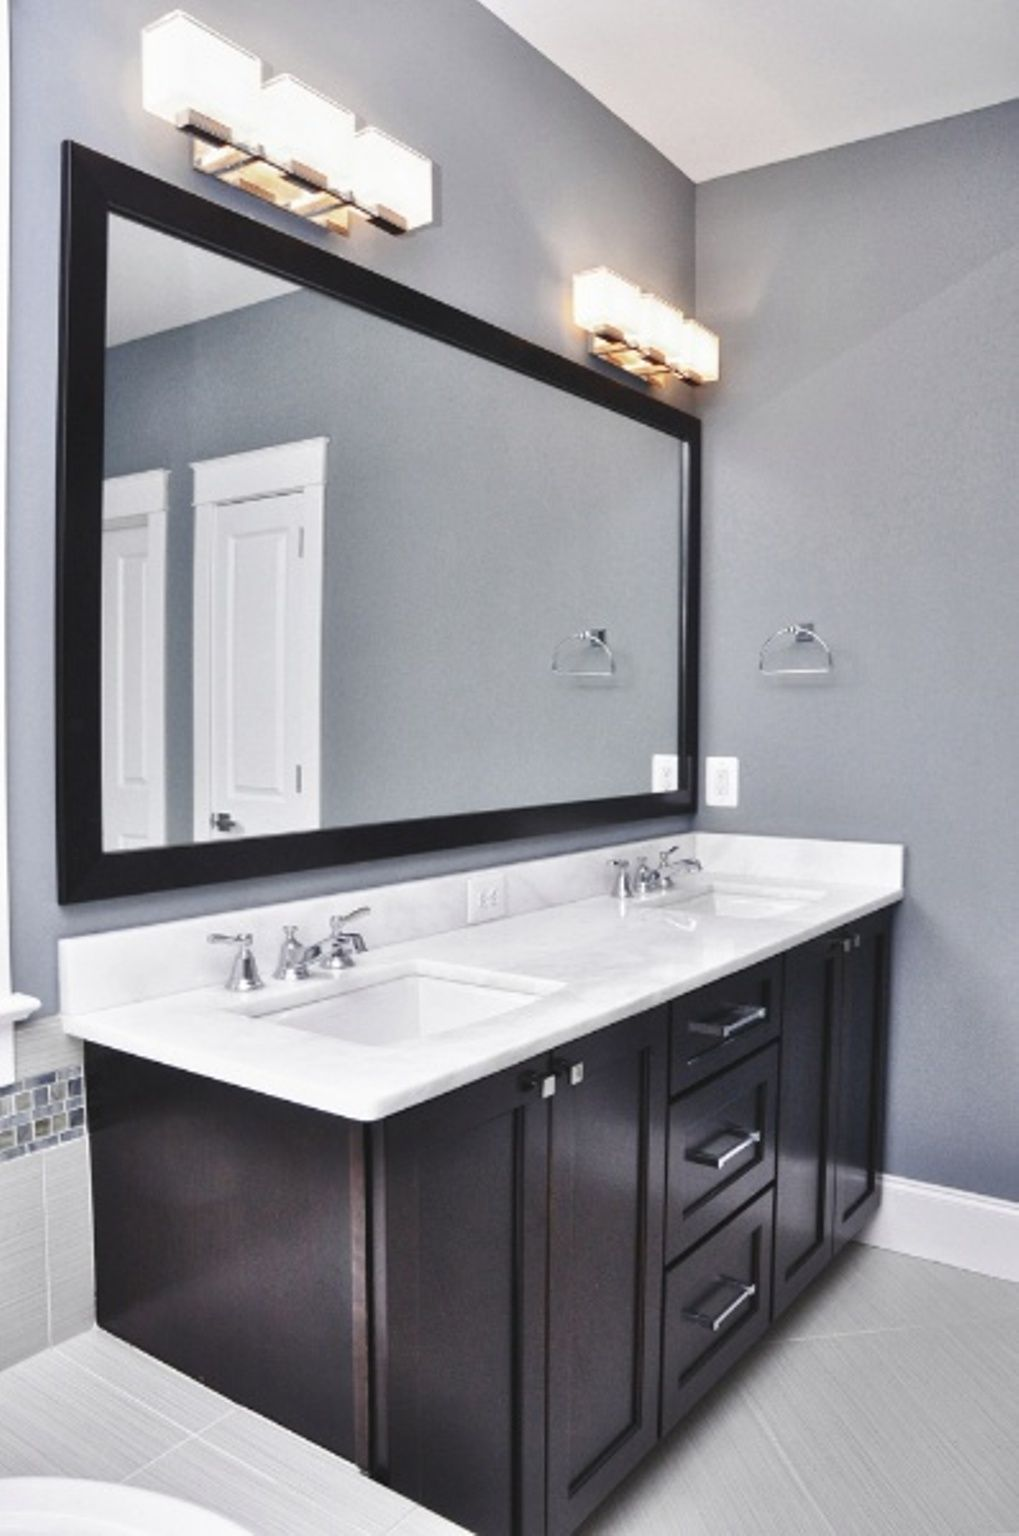 Bathroom Grey Wall And Dark Cabinet With Bathroom Light Fixtures Over Mi Light Fixtures Bathroom Vanity Modern Bathroom Light Fixtures Modern Bathroom Lighting